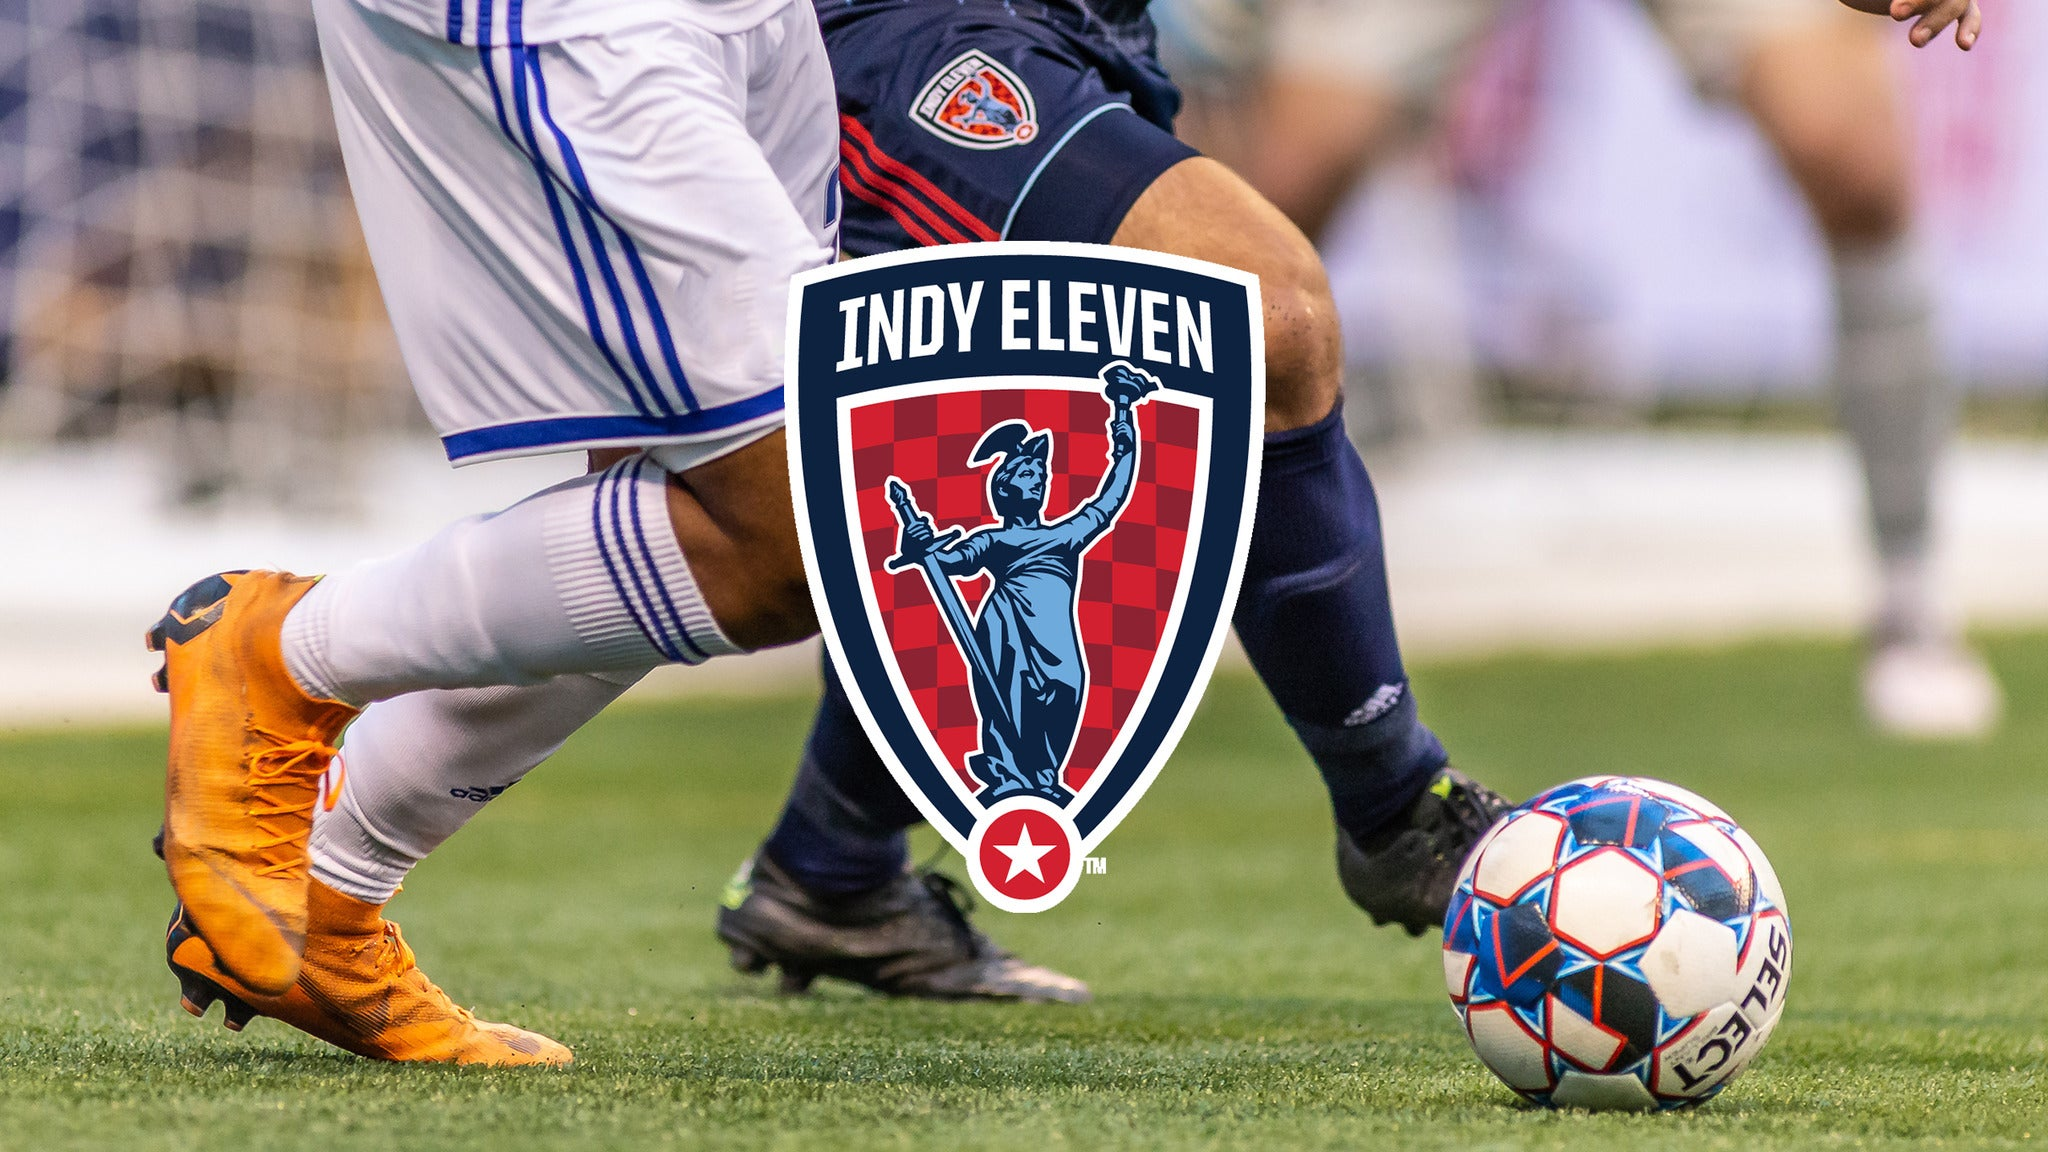 Charlotte Independence at Indy Eleven at Lucas Oil Stadium